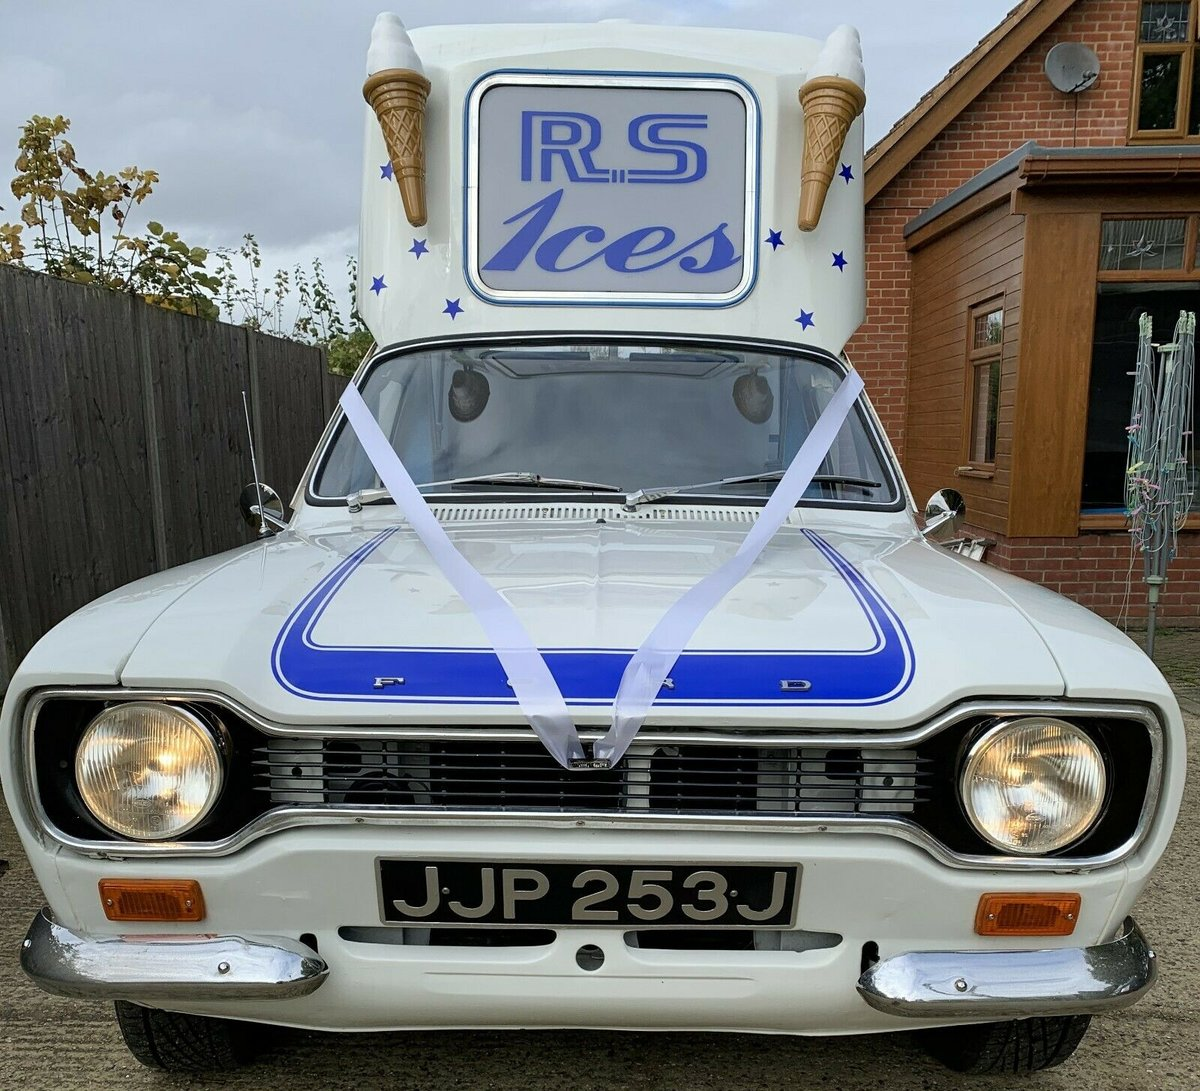 1971 Incredible MK1 Ford Escort Ice Cream Van For Sale (picture 4 of 6)